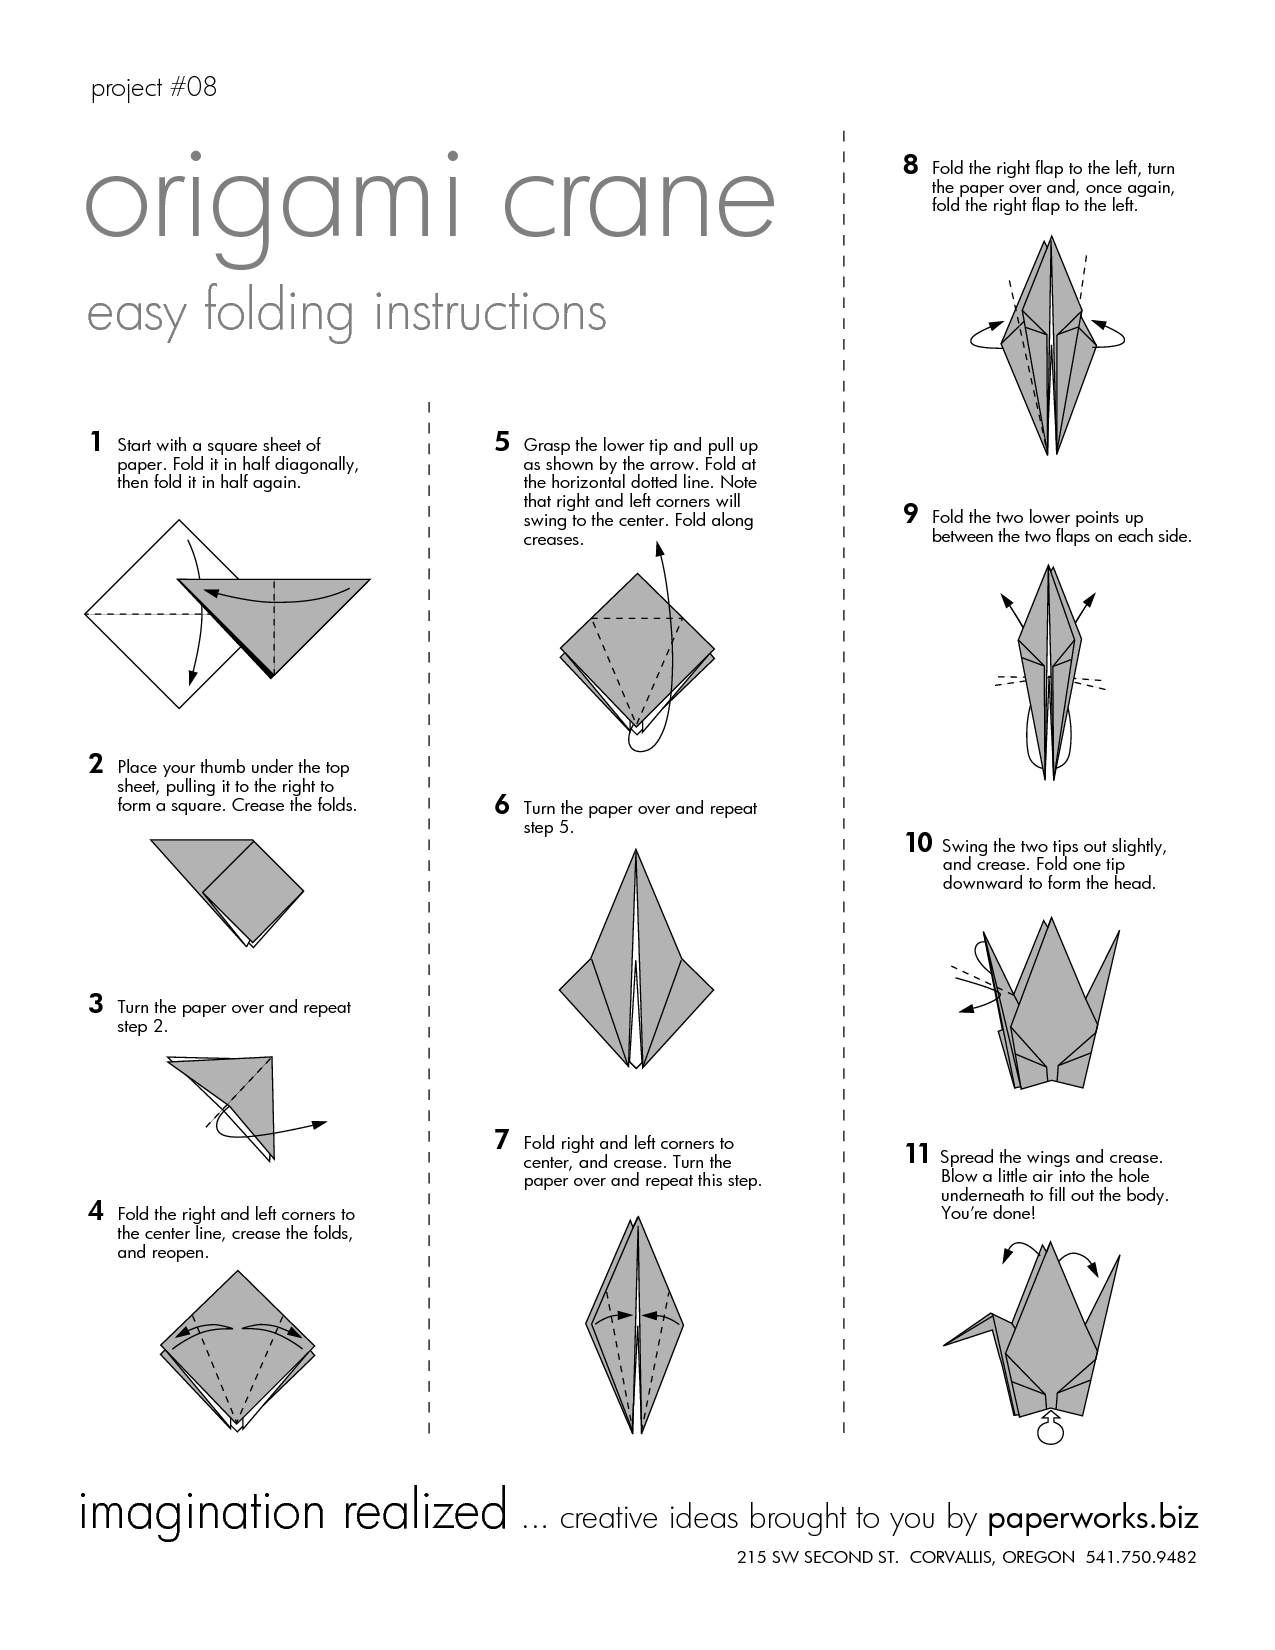 Pin By Tun Nguyn Mnh On Origami Pinterest Origami Crane And